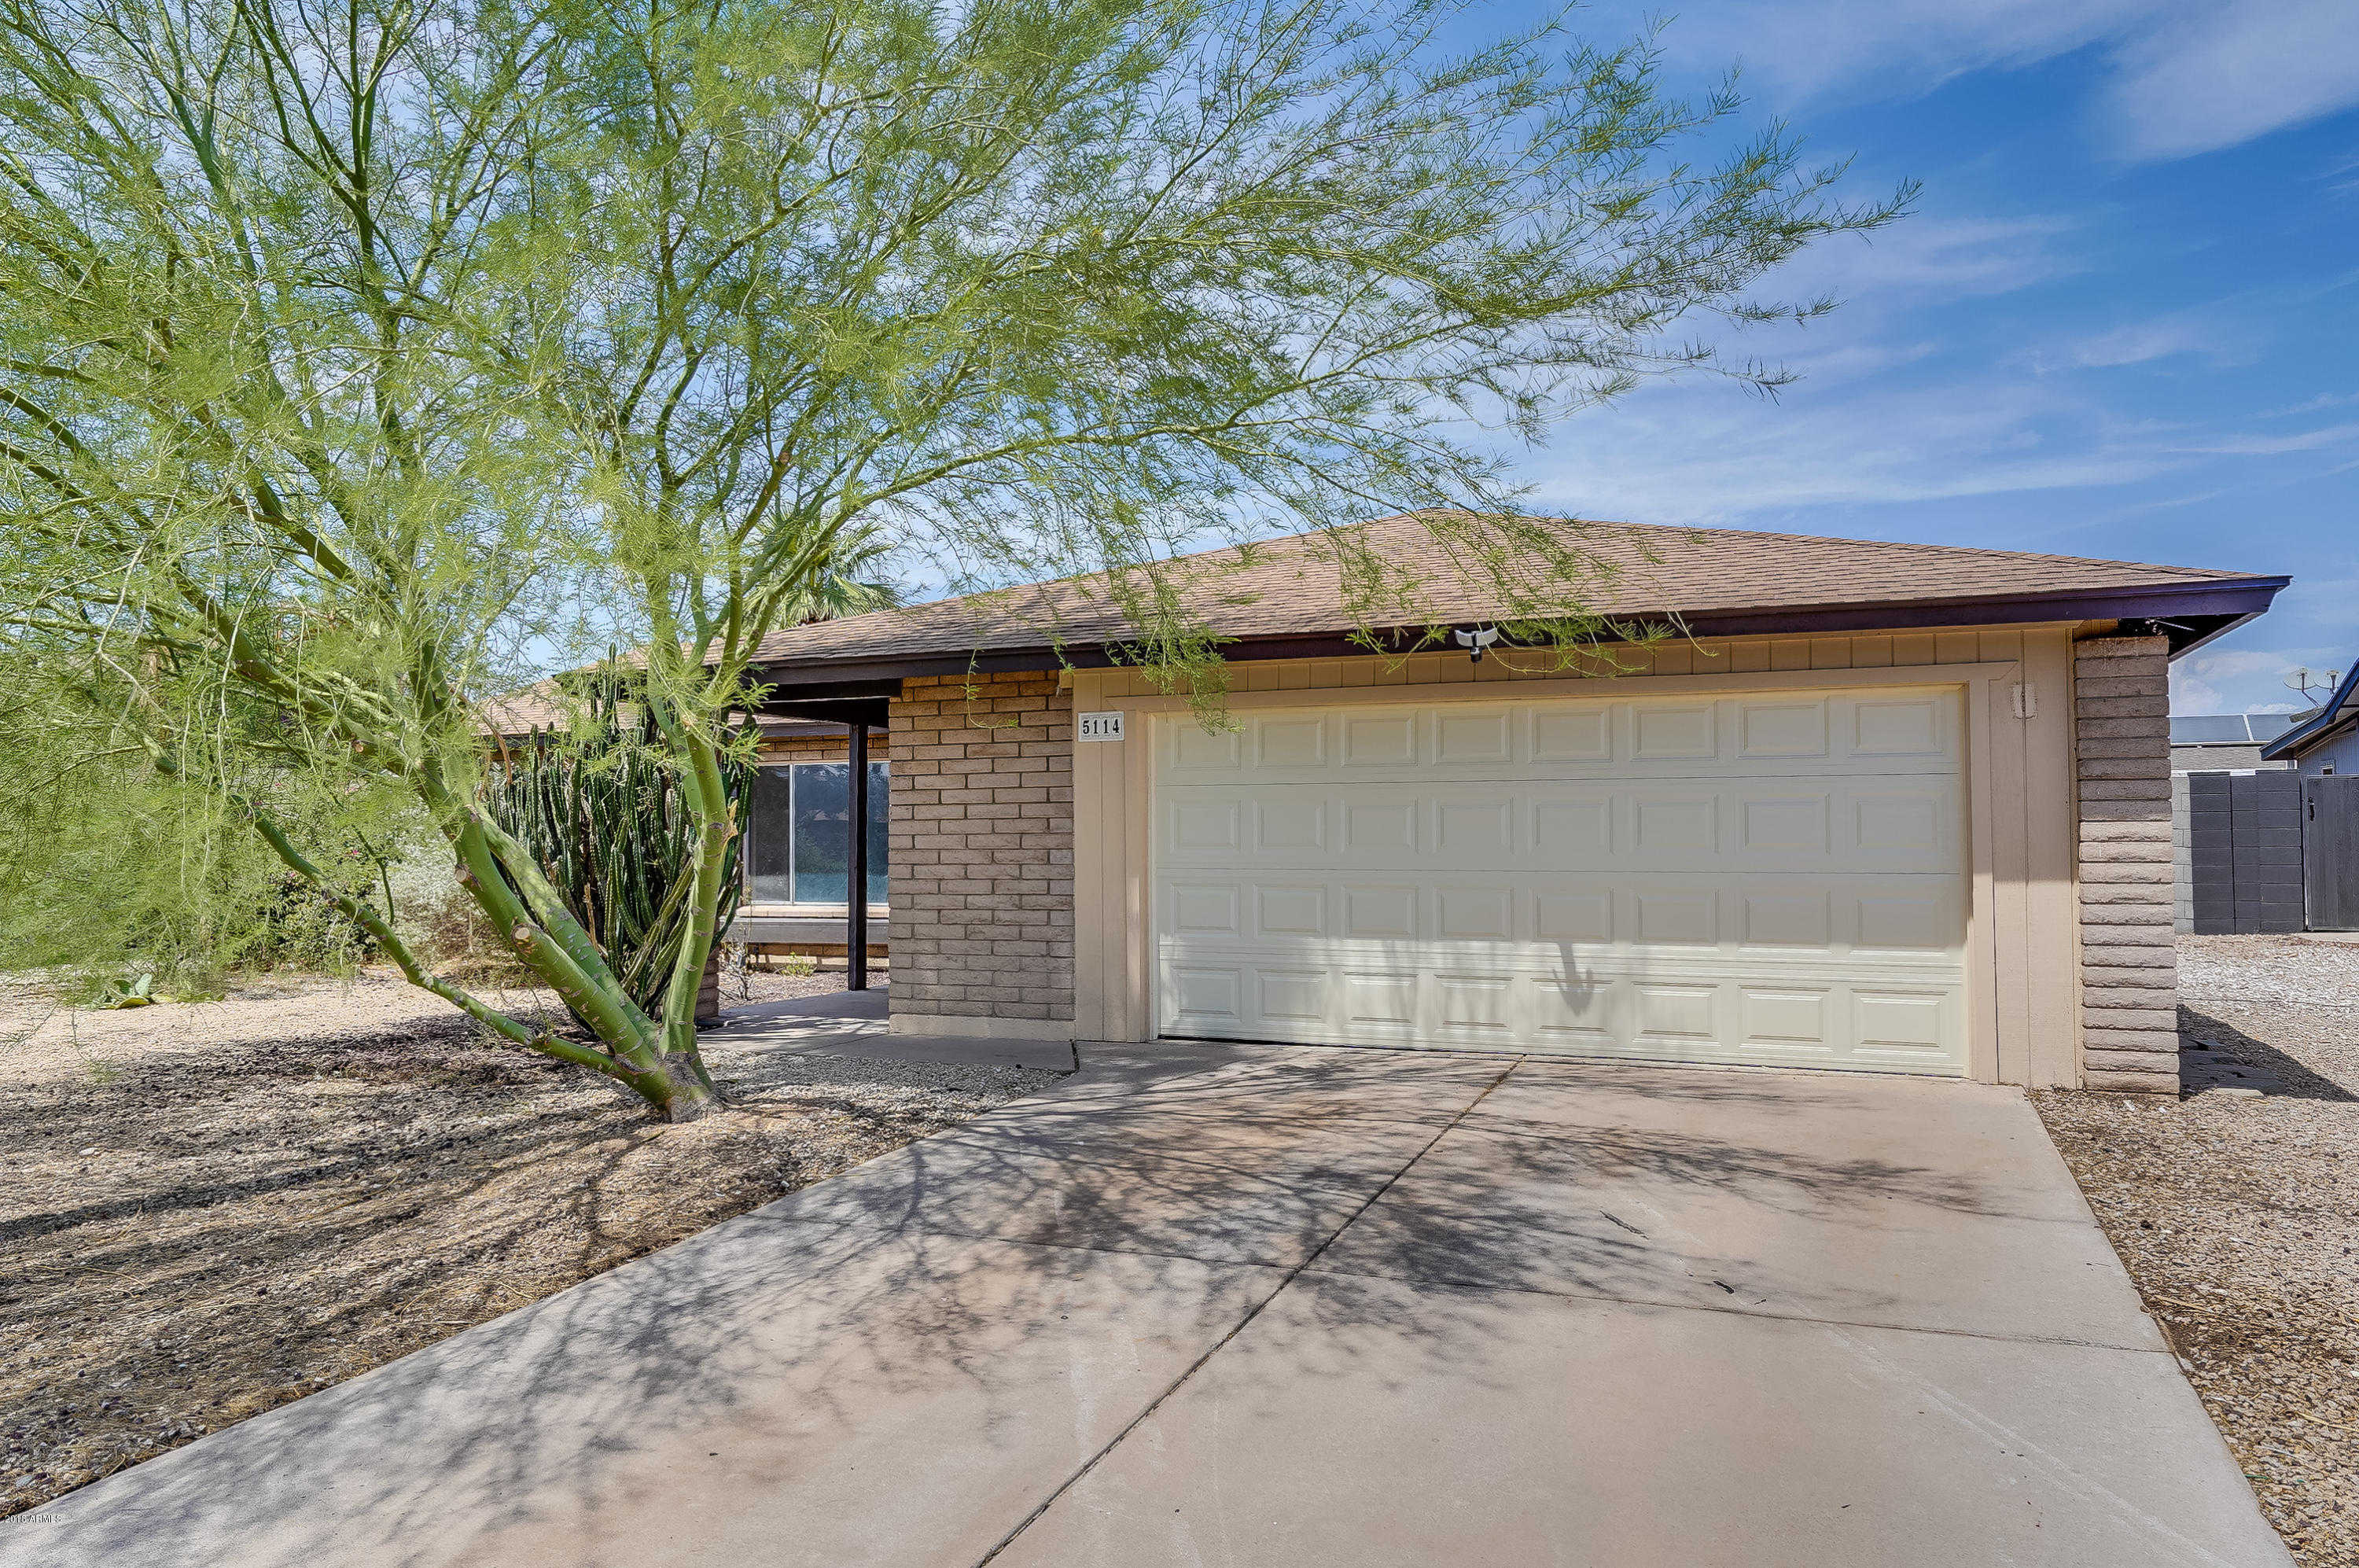 $232,900 - 3Br/2Ba - Home for Sale in Thunderbird Palms, Glendale